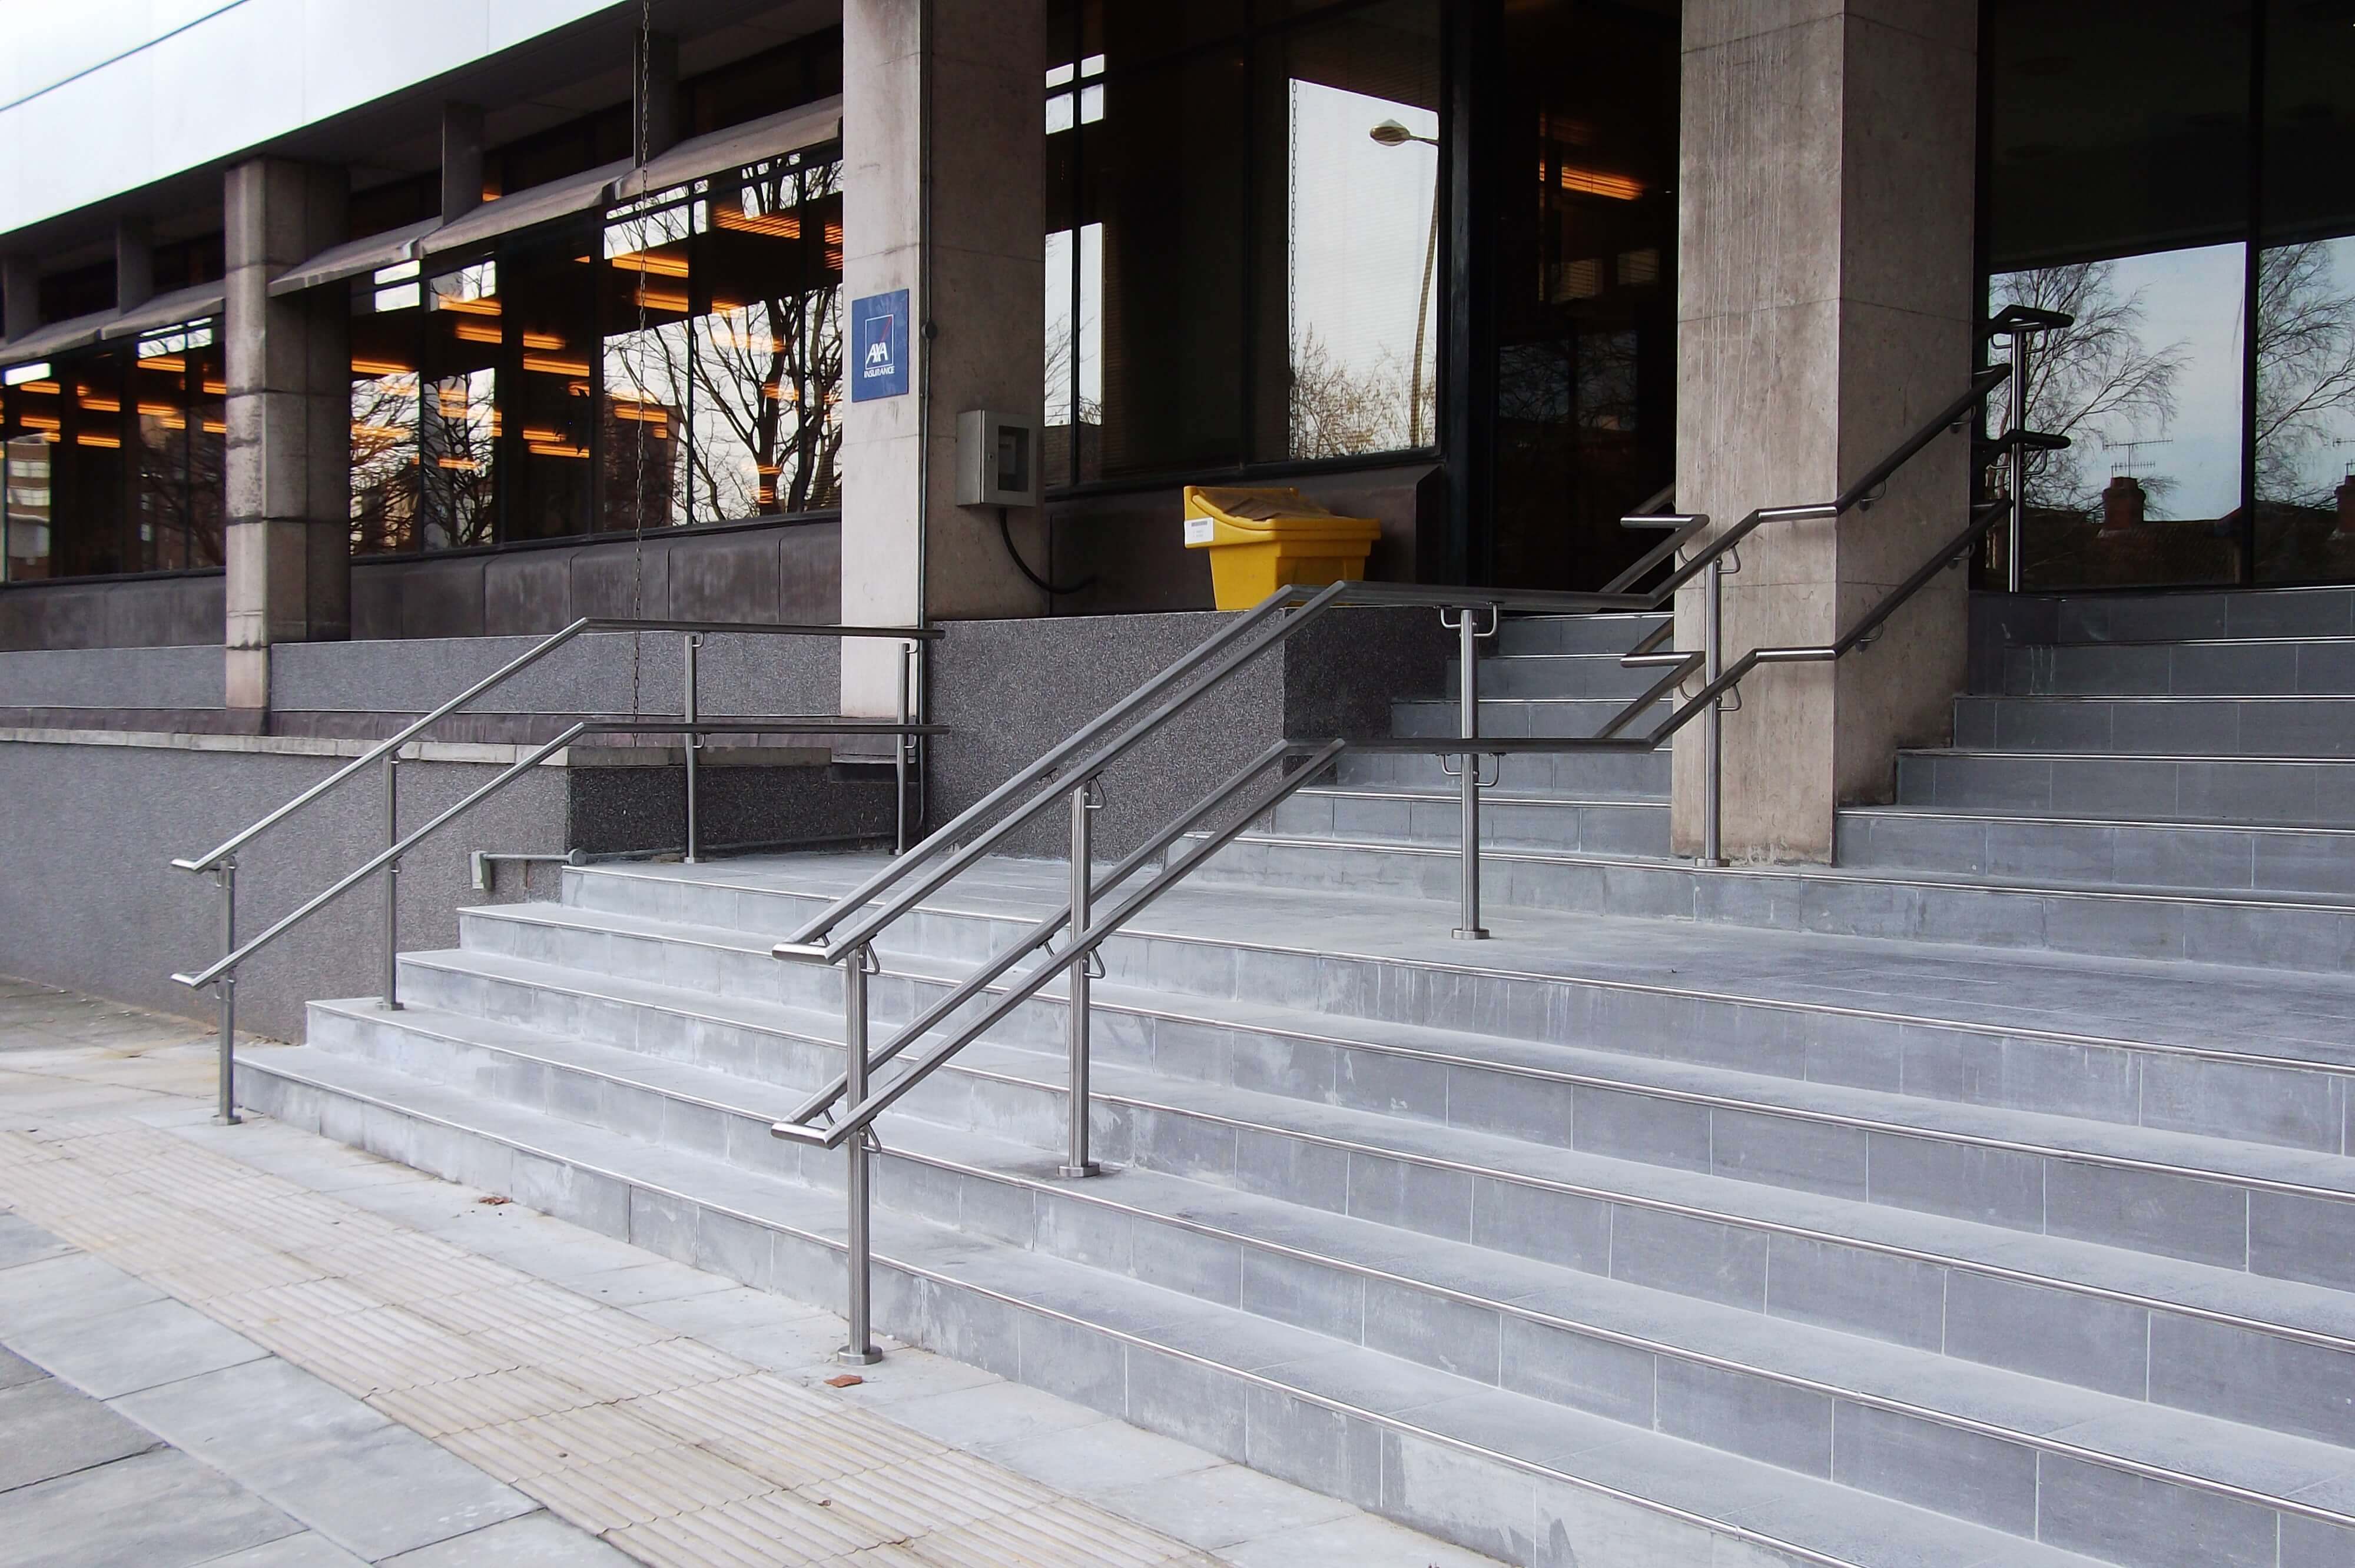 stainless steel handrail on steps